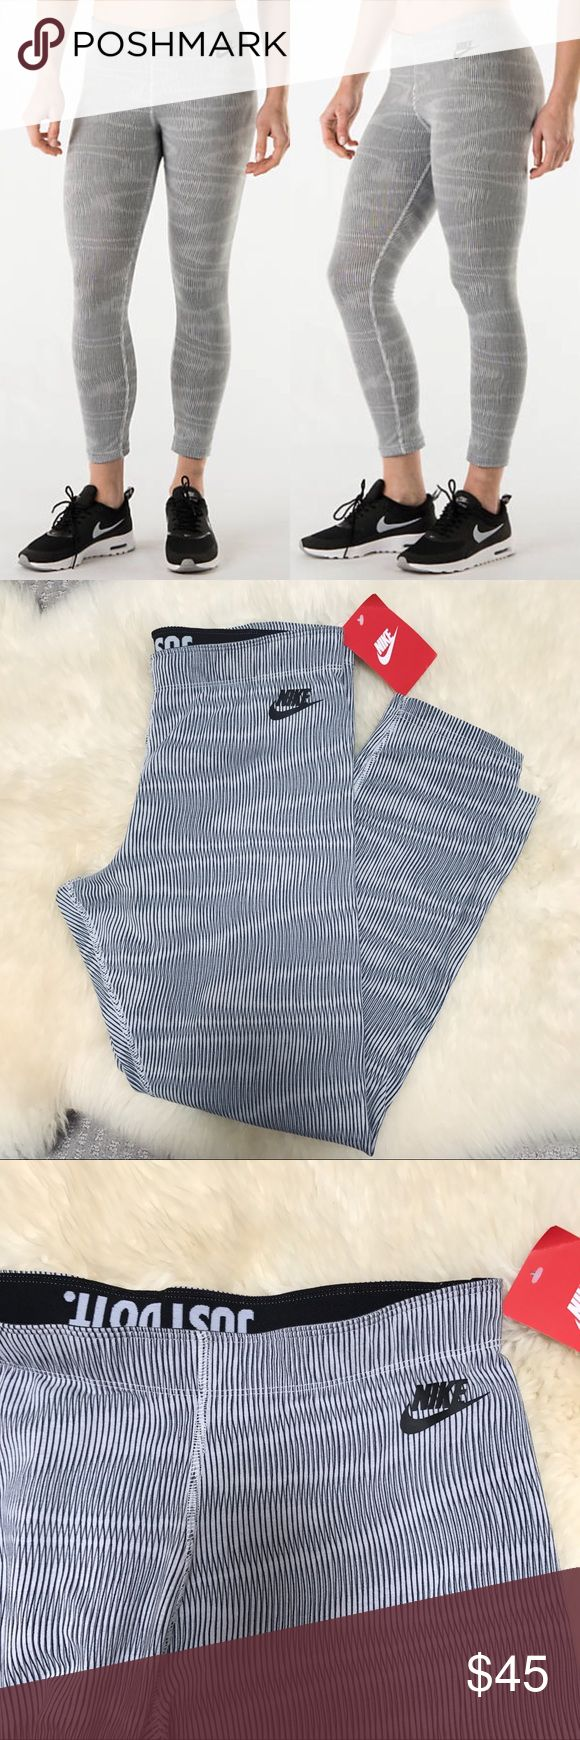 "Nike Striped Stretch Cotton Leggings •Cropped stretchy cotton leggings with an all over print.  •Size Medium, true to size. Inseam 23"".  •New with tag.  •No trades. No holds. Nike Pants Leggings"